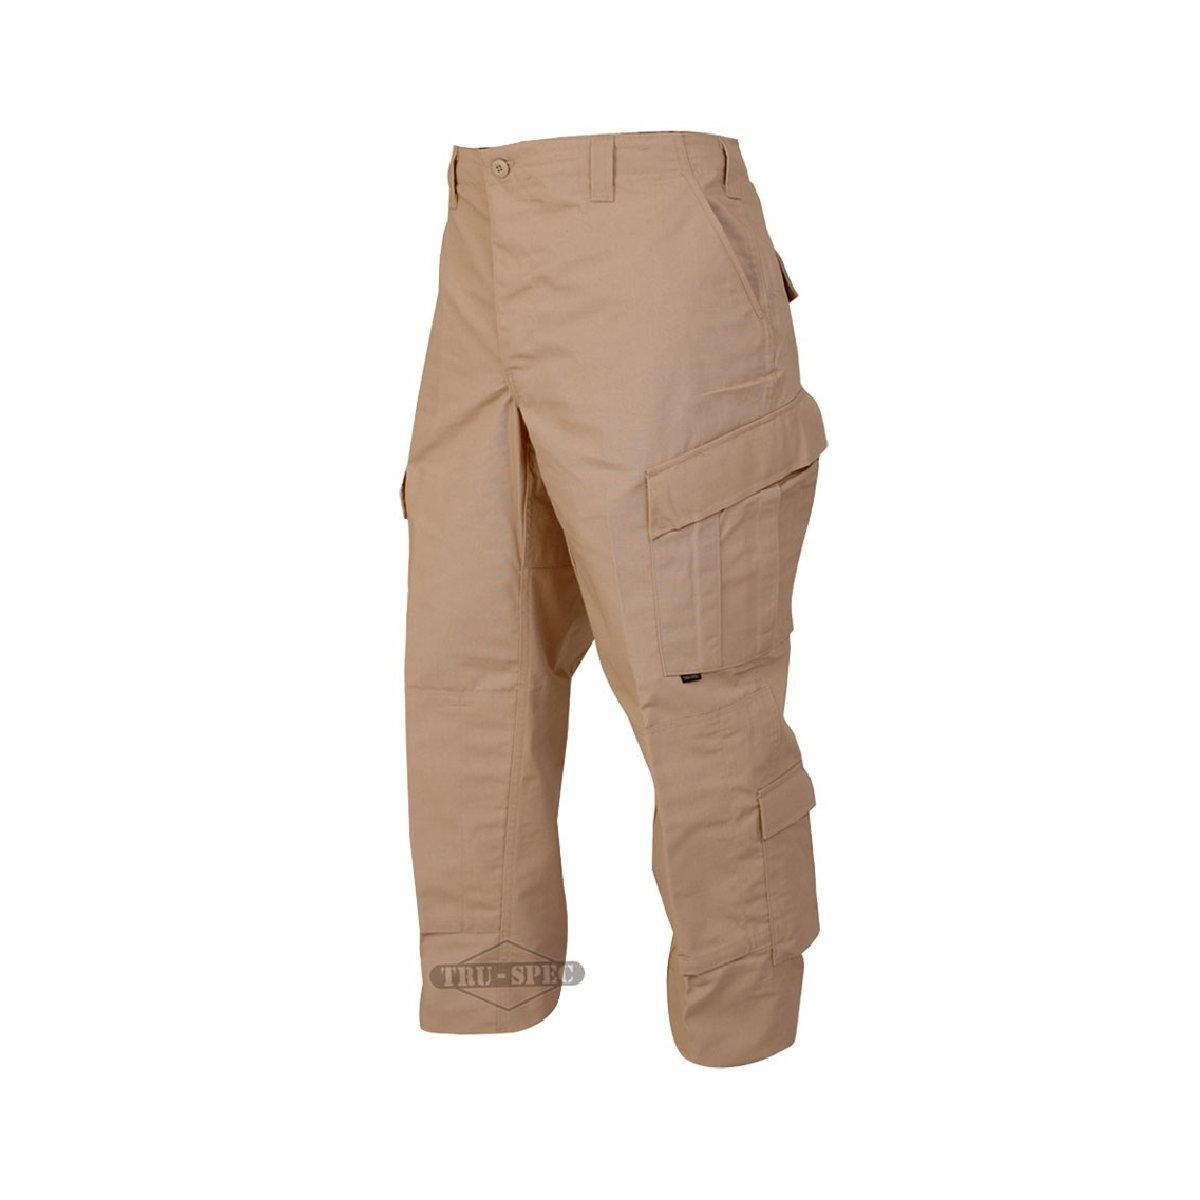 Tru-Spec 1271004 Poly Cotton Ripstop T.R.U. Pants Coyote TS1268-1312